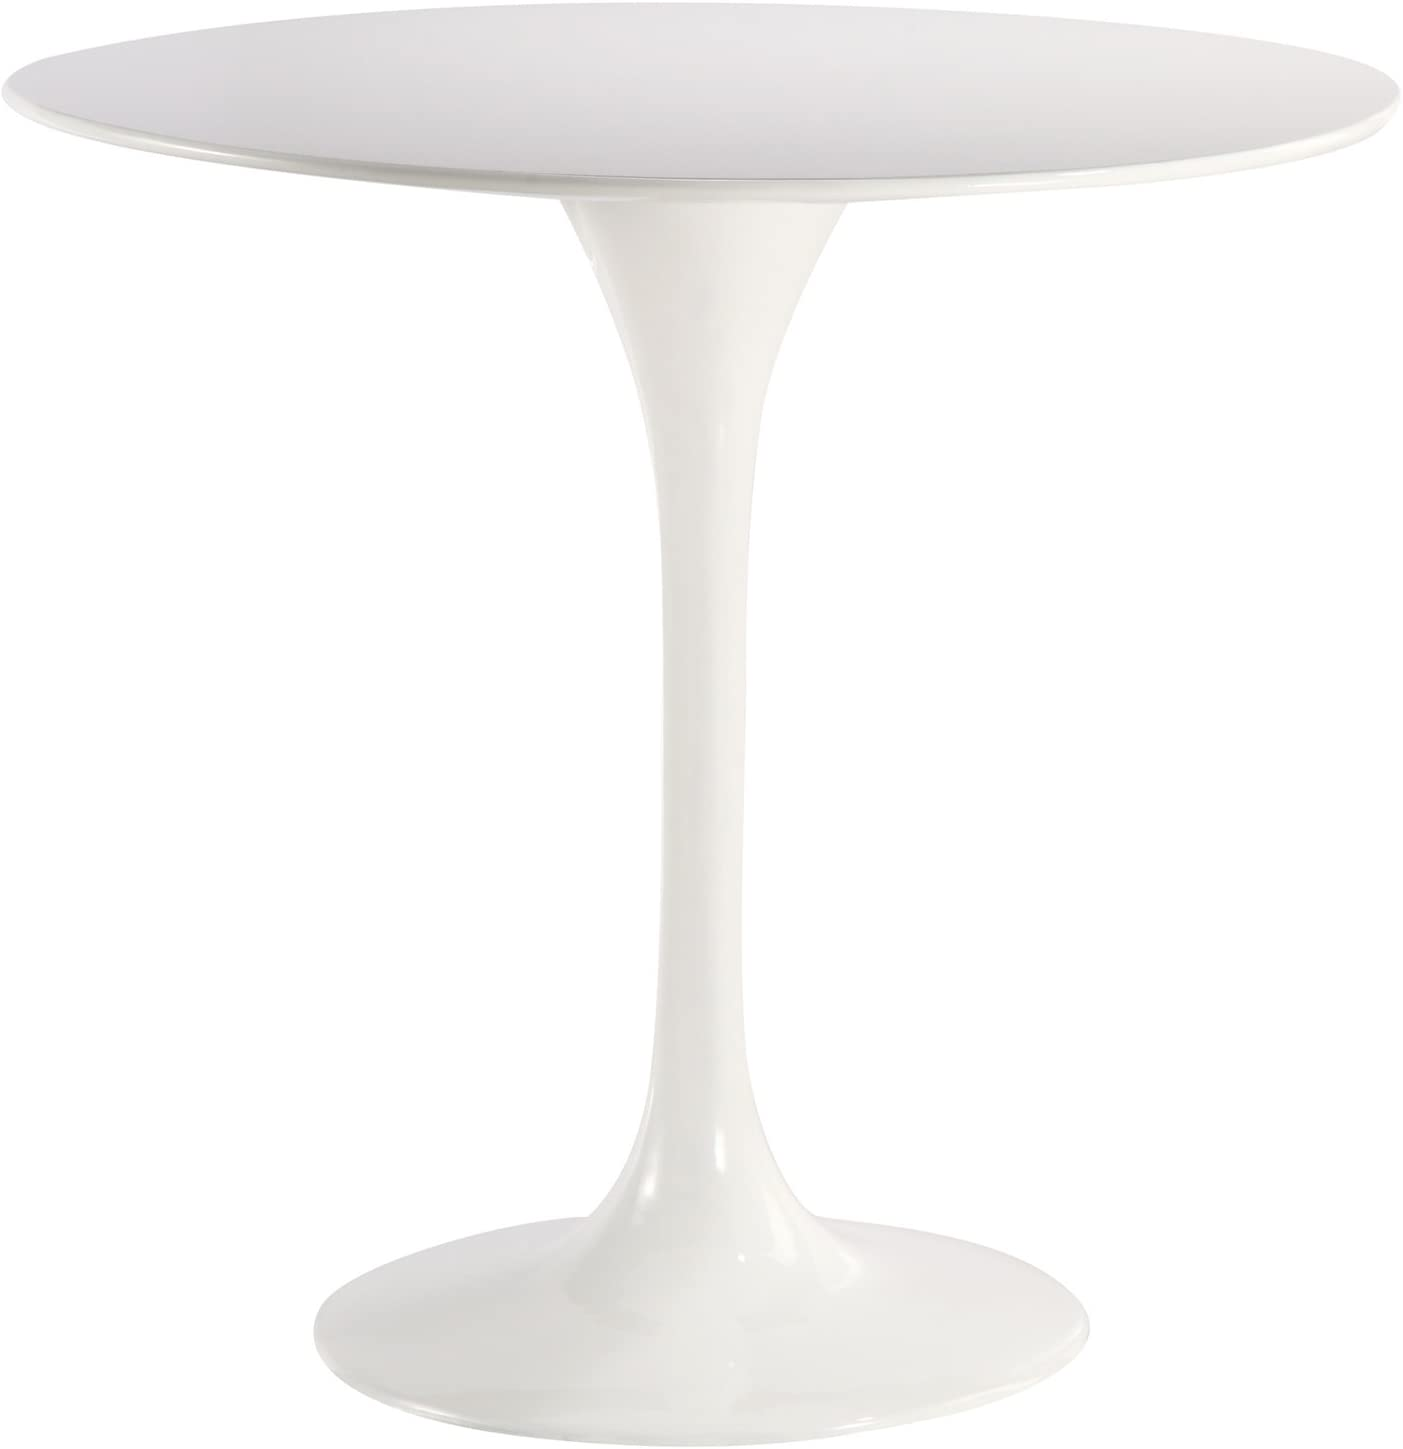 "Poly and Bark Daisy 40"" Fiberglass Dining Table in White"